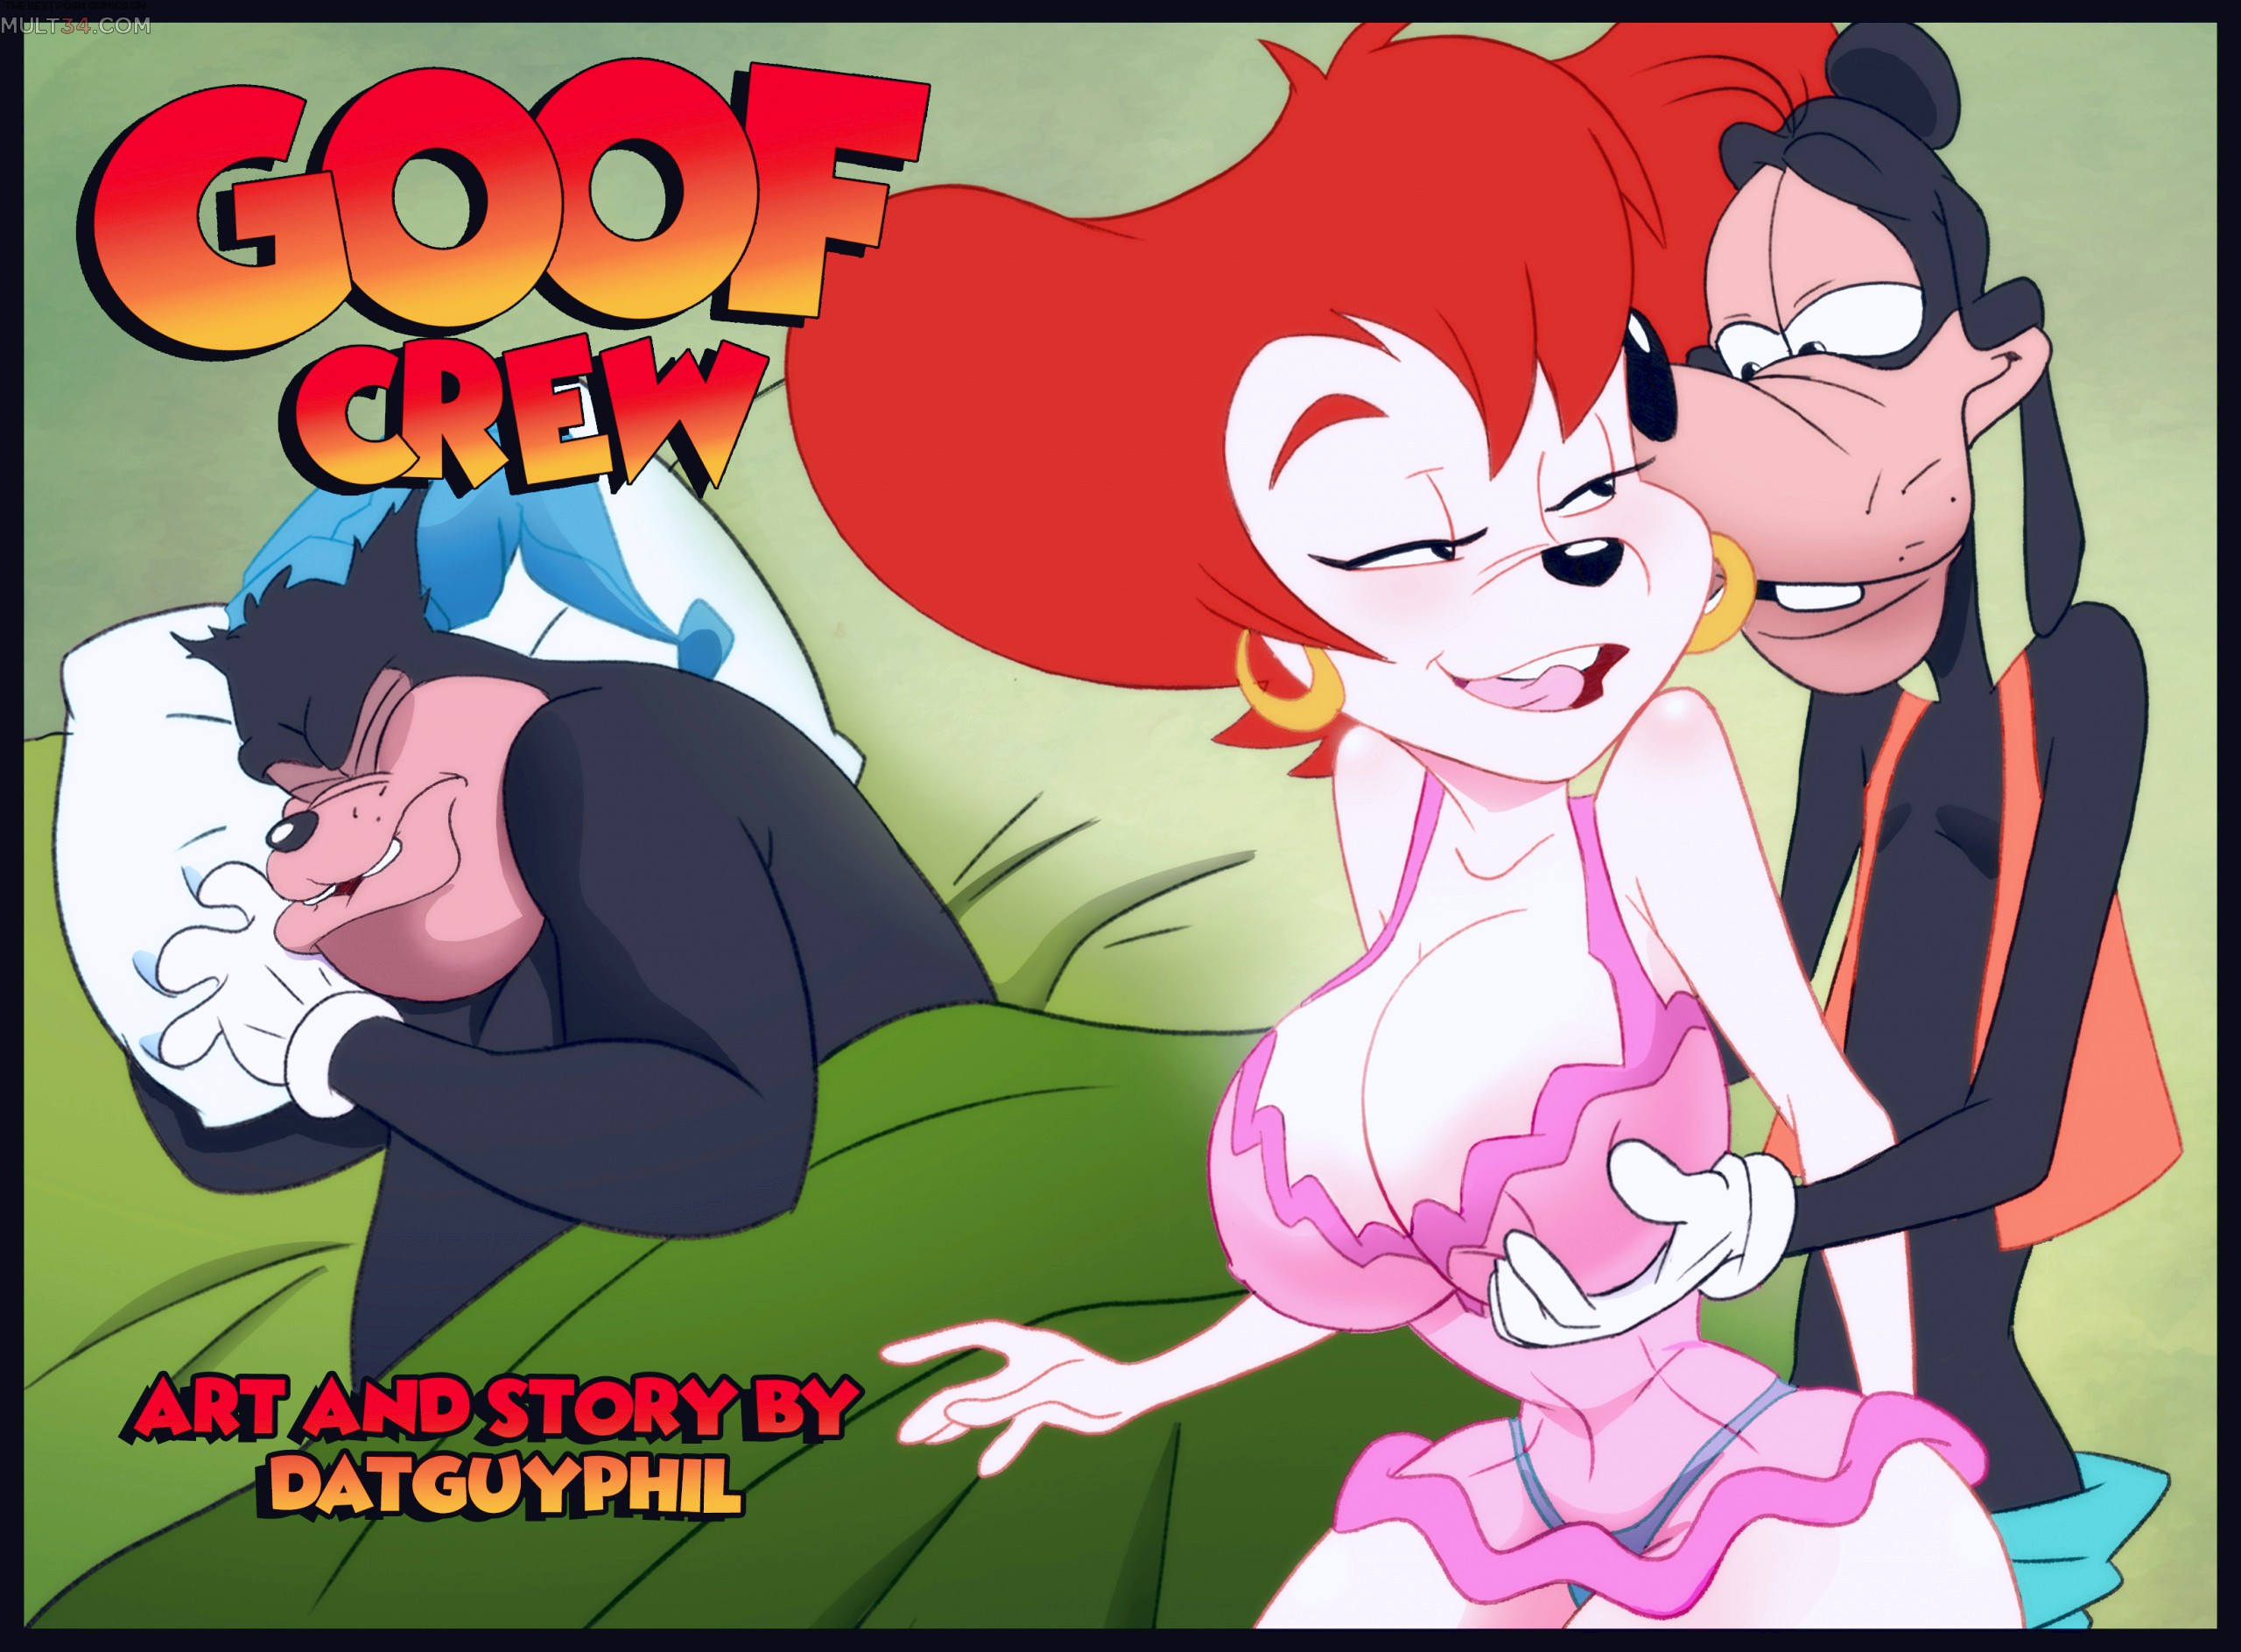 Goof Crew porn comic page 1 on category Goof Troop